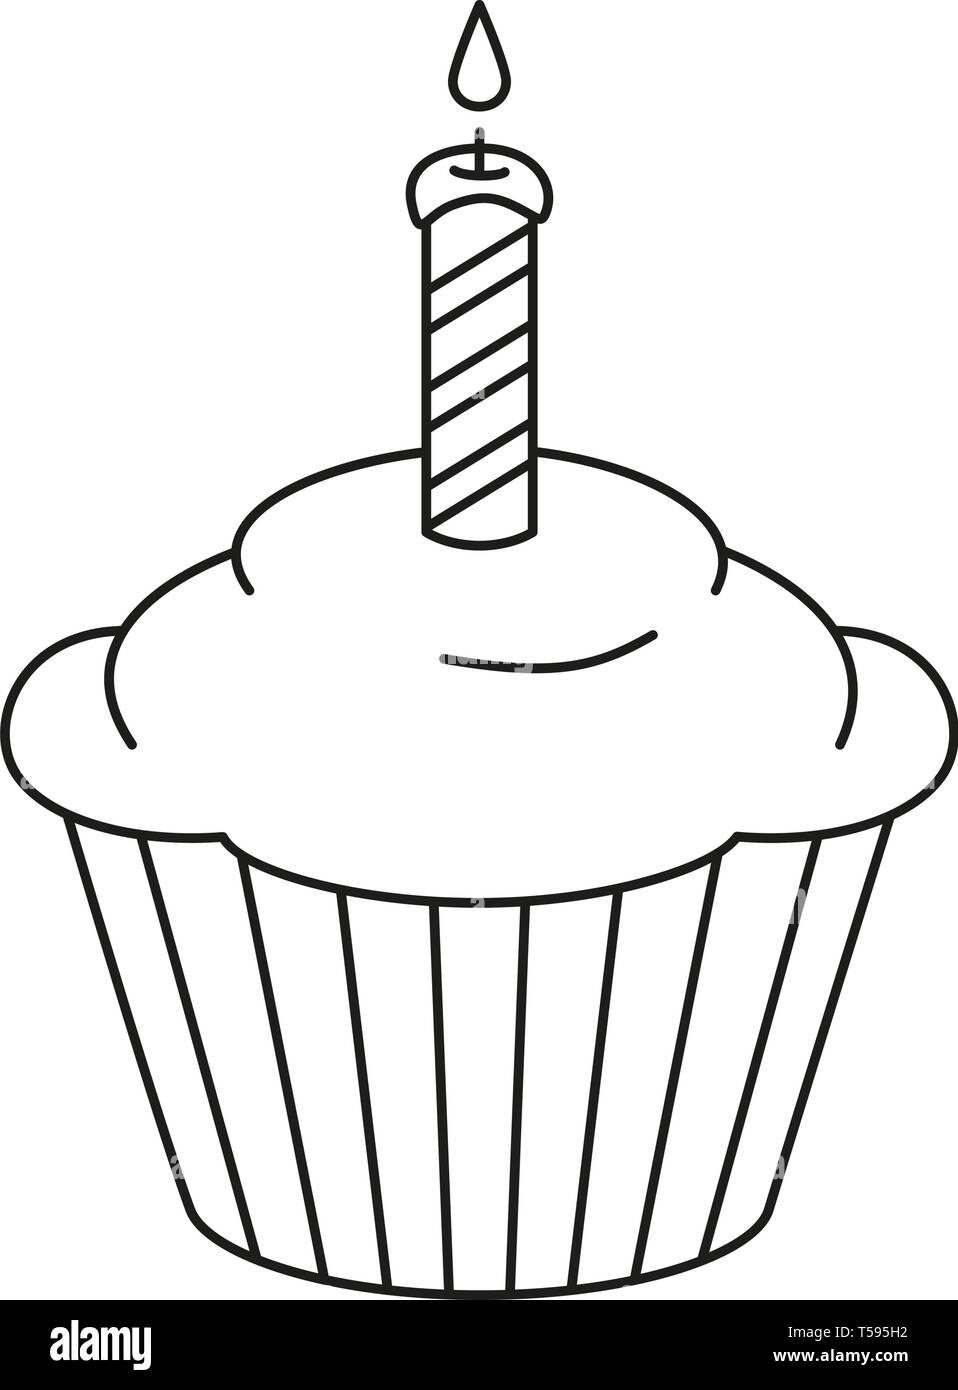 Fine Line Art Black And White Birthday Cupcake Stock Vector Art Funny Birthday Cards Online Alyptdamsfinfo